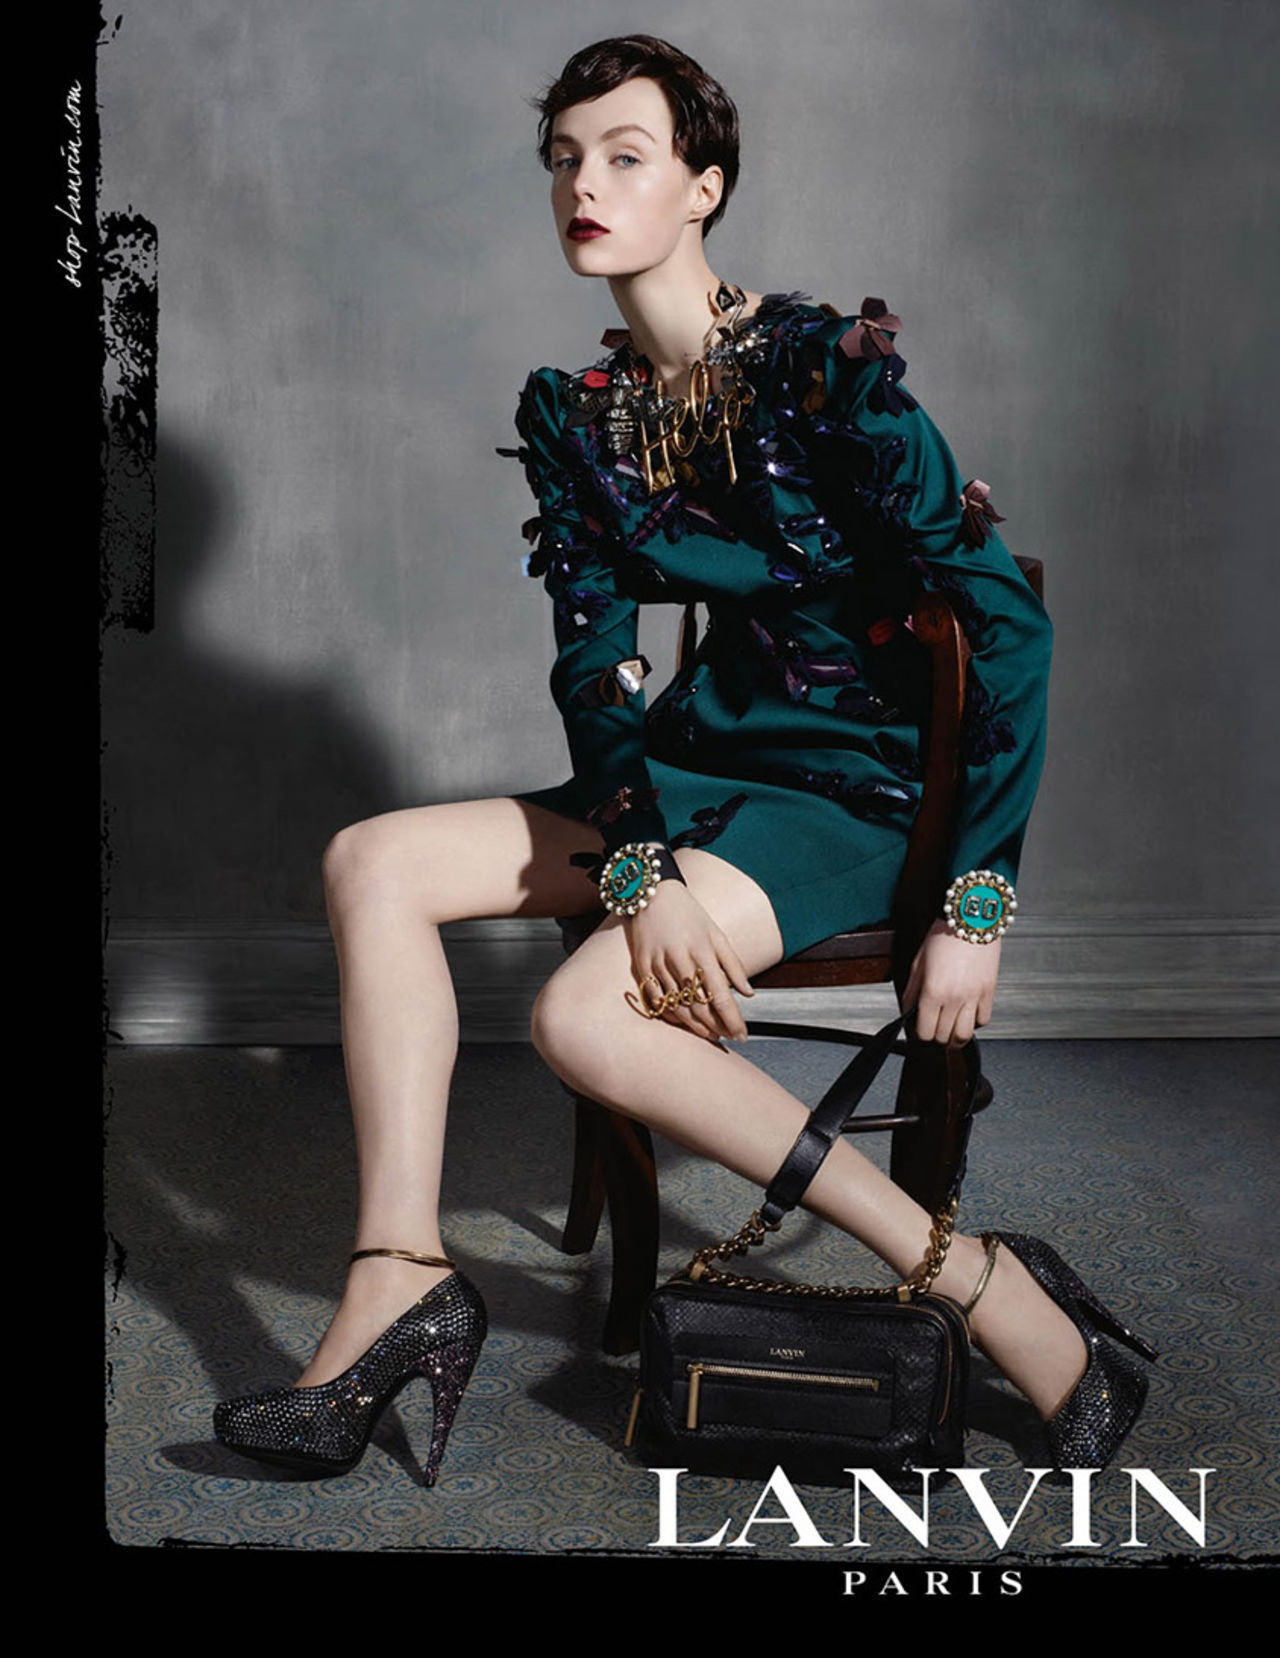 Lanvin FW 2013-2014 ad campaign by Steve Meisel